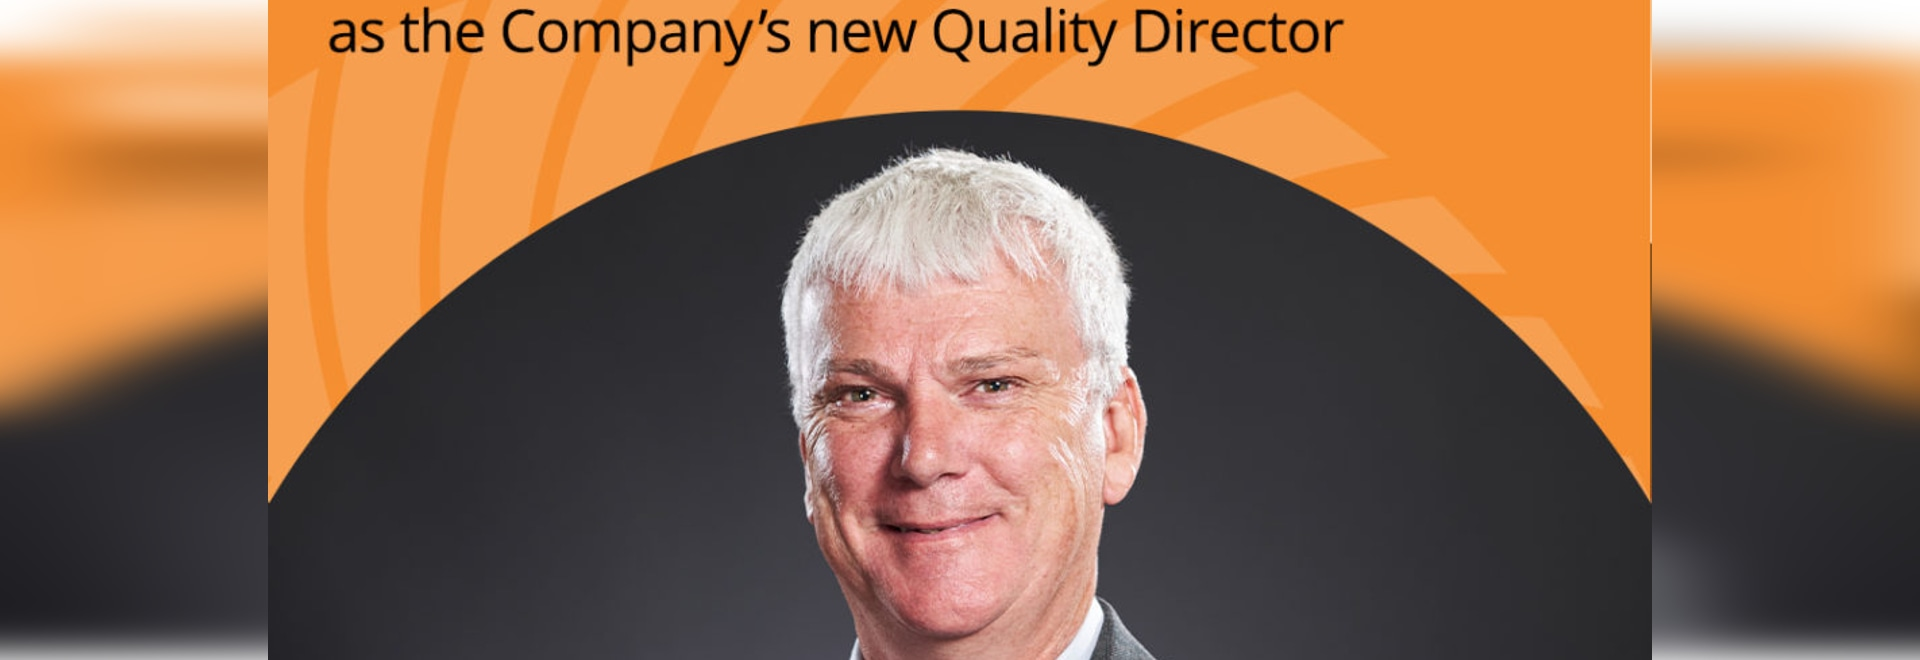 Farsound Aviation appoints new quality director